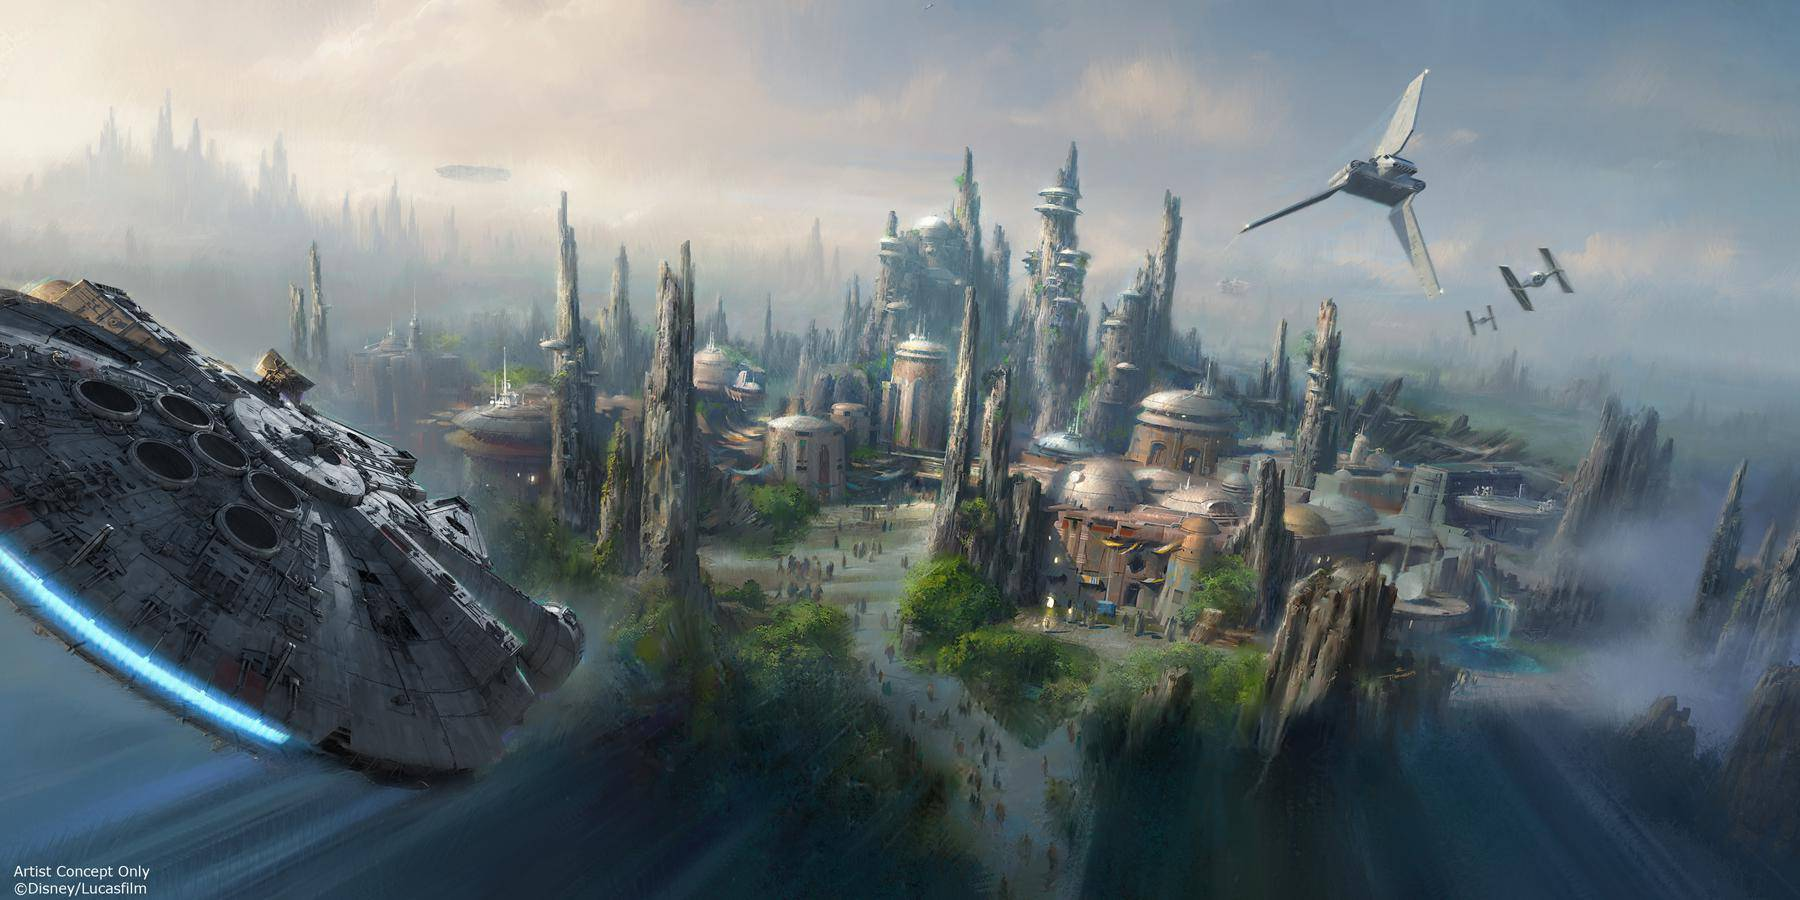 Star Wars Land Announced!